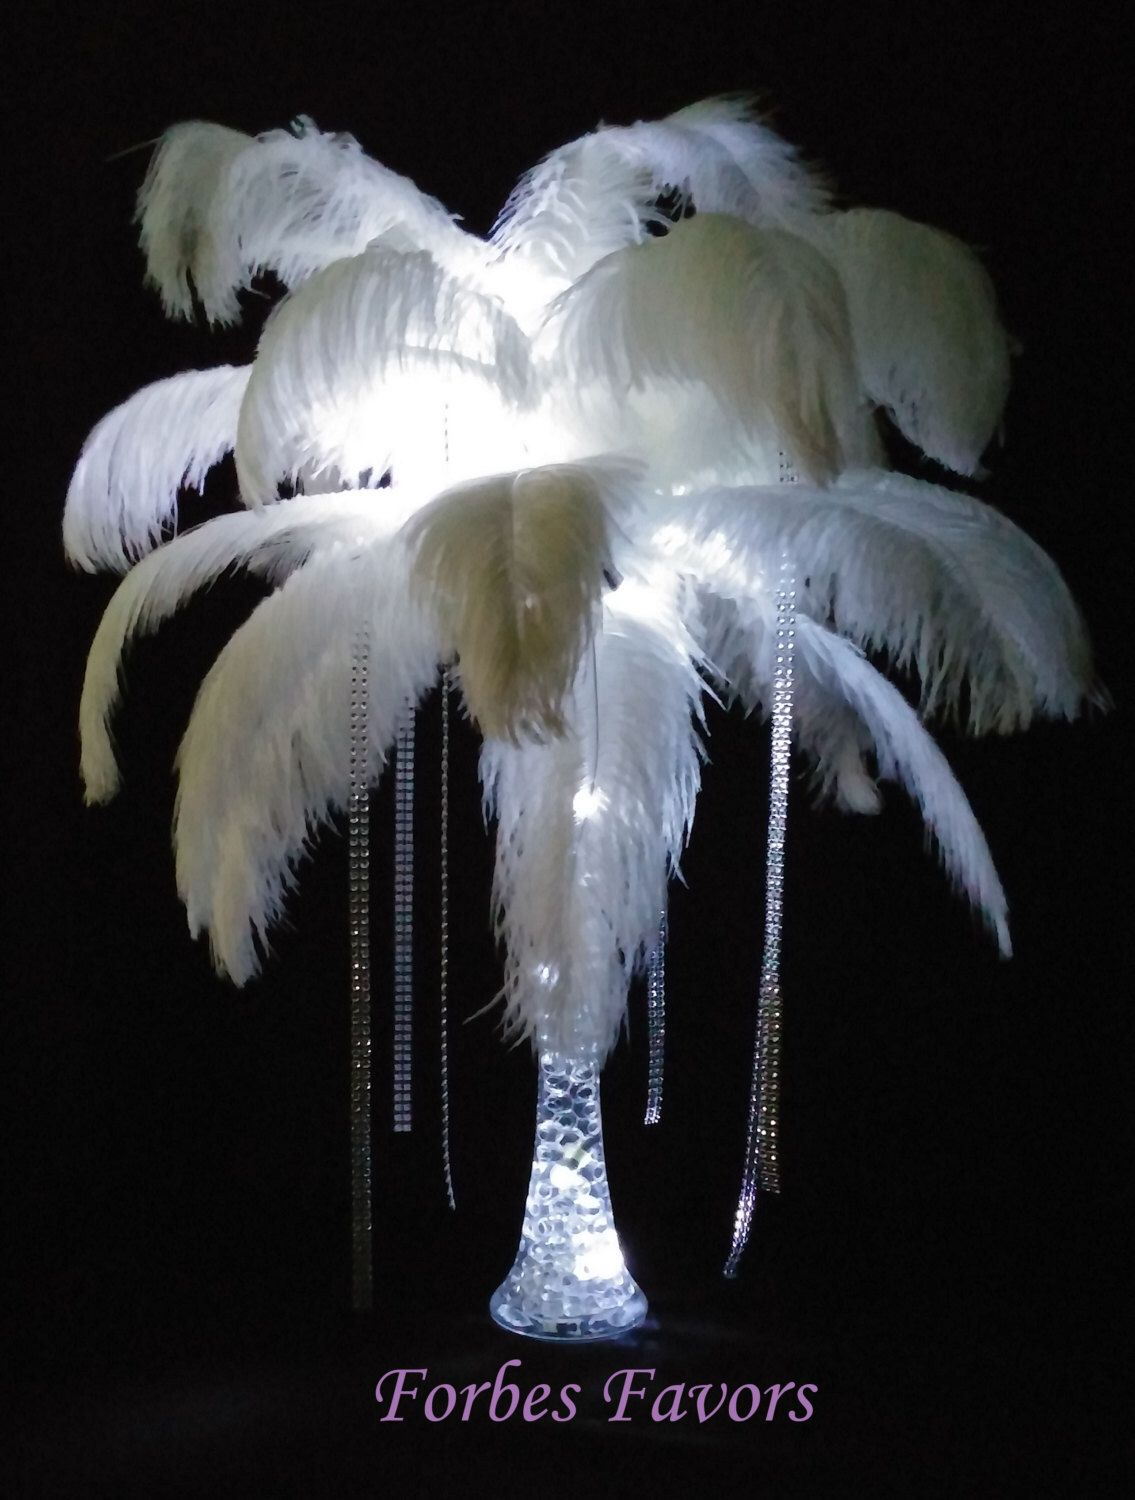 Diy mystique ostrich feather centerpiece weddings special events diy mystique ostrich feather centerpiece weddings special events with or without stand by forbesfavors on reviewsmspy